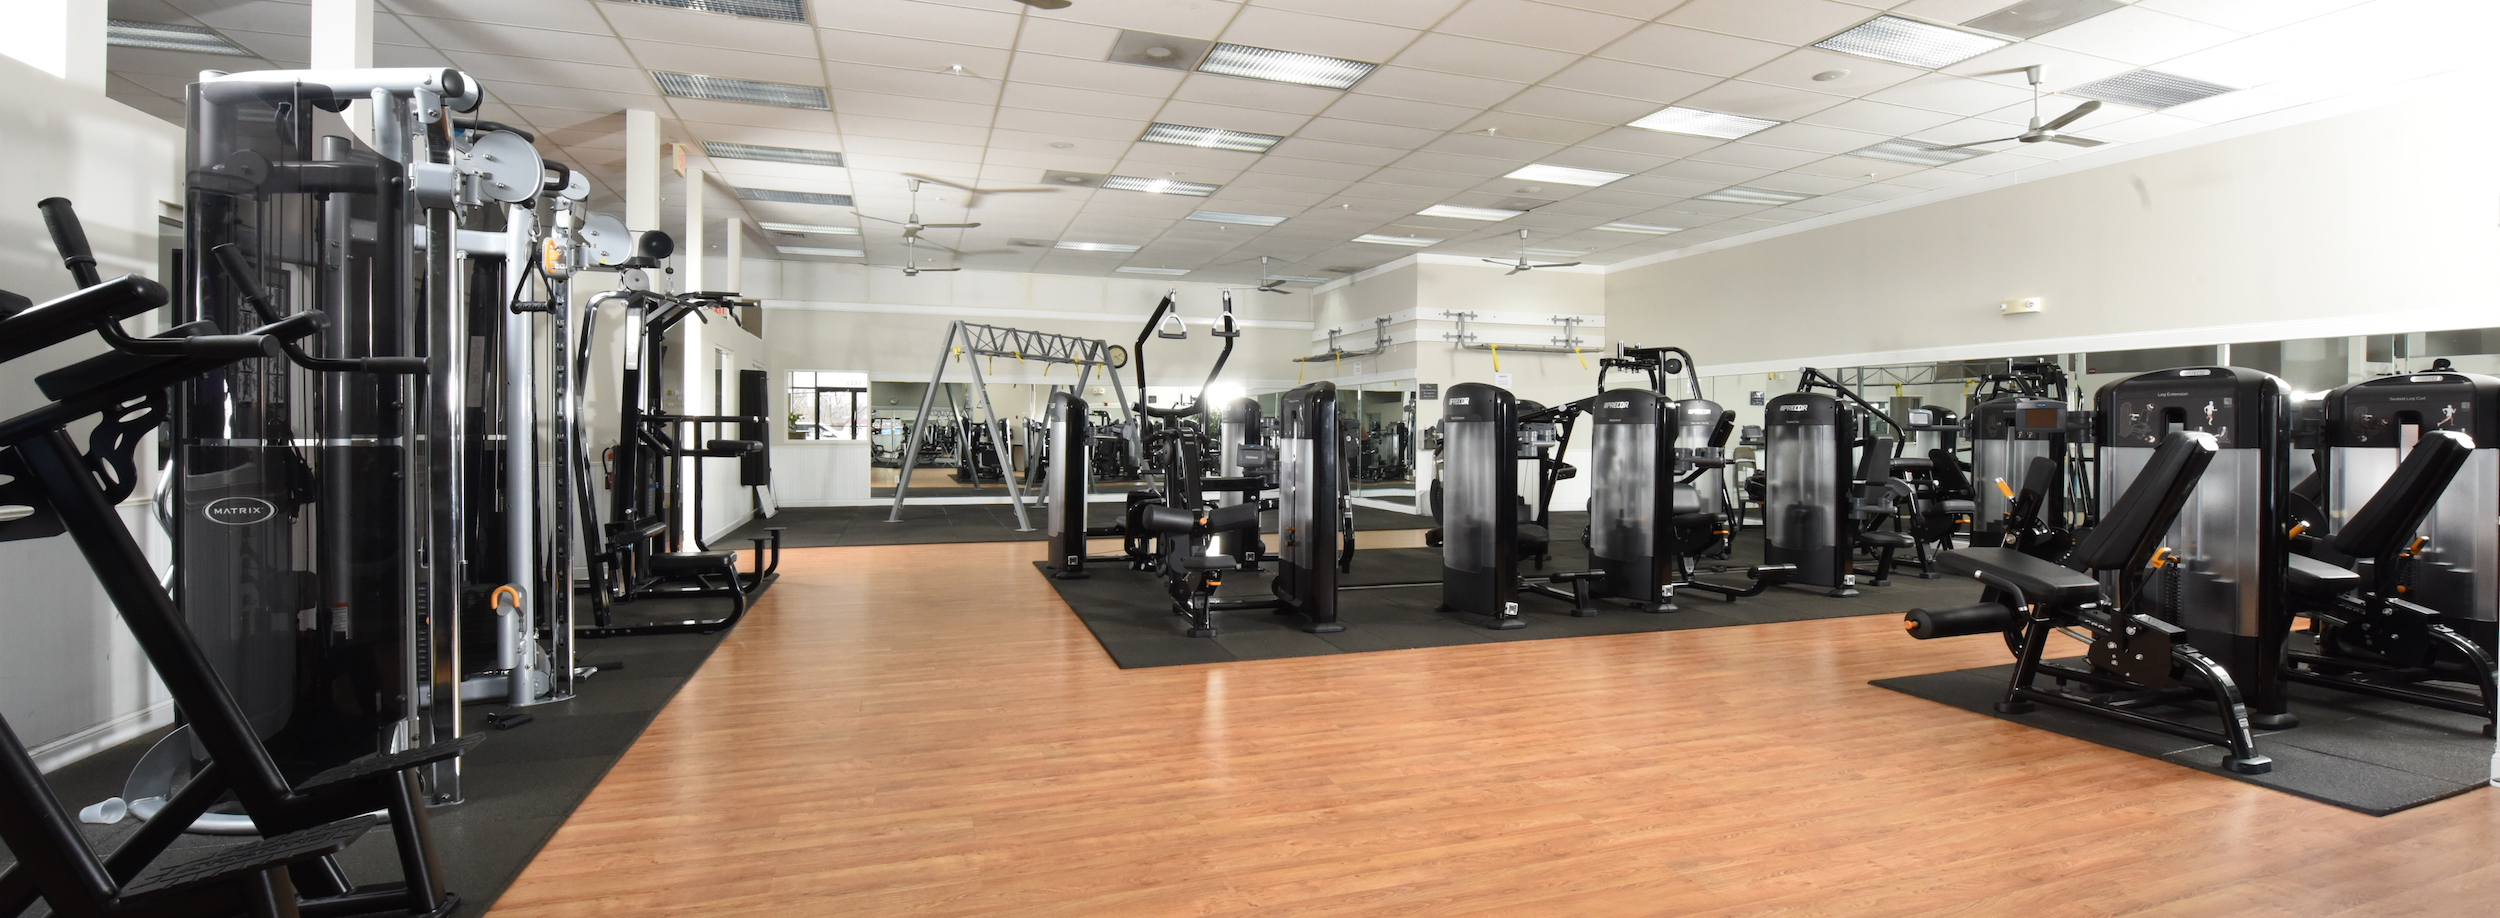 Evolutions Annapolis Health Club